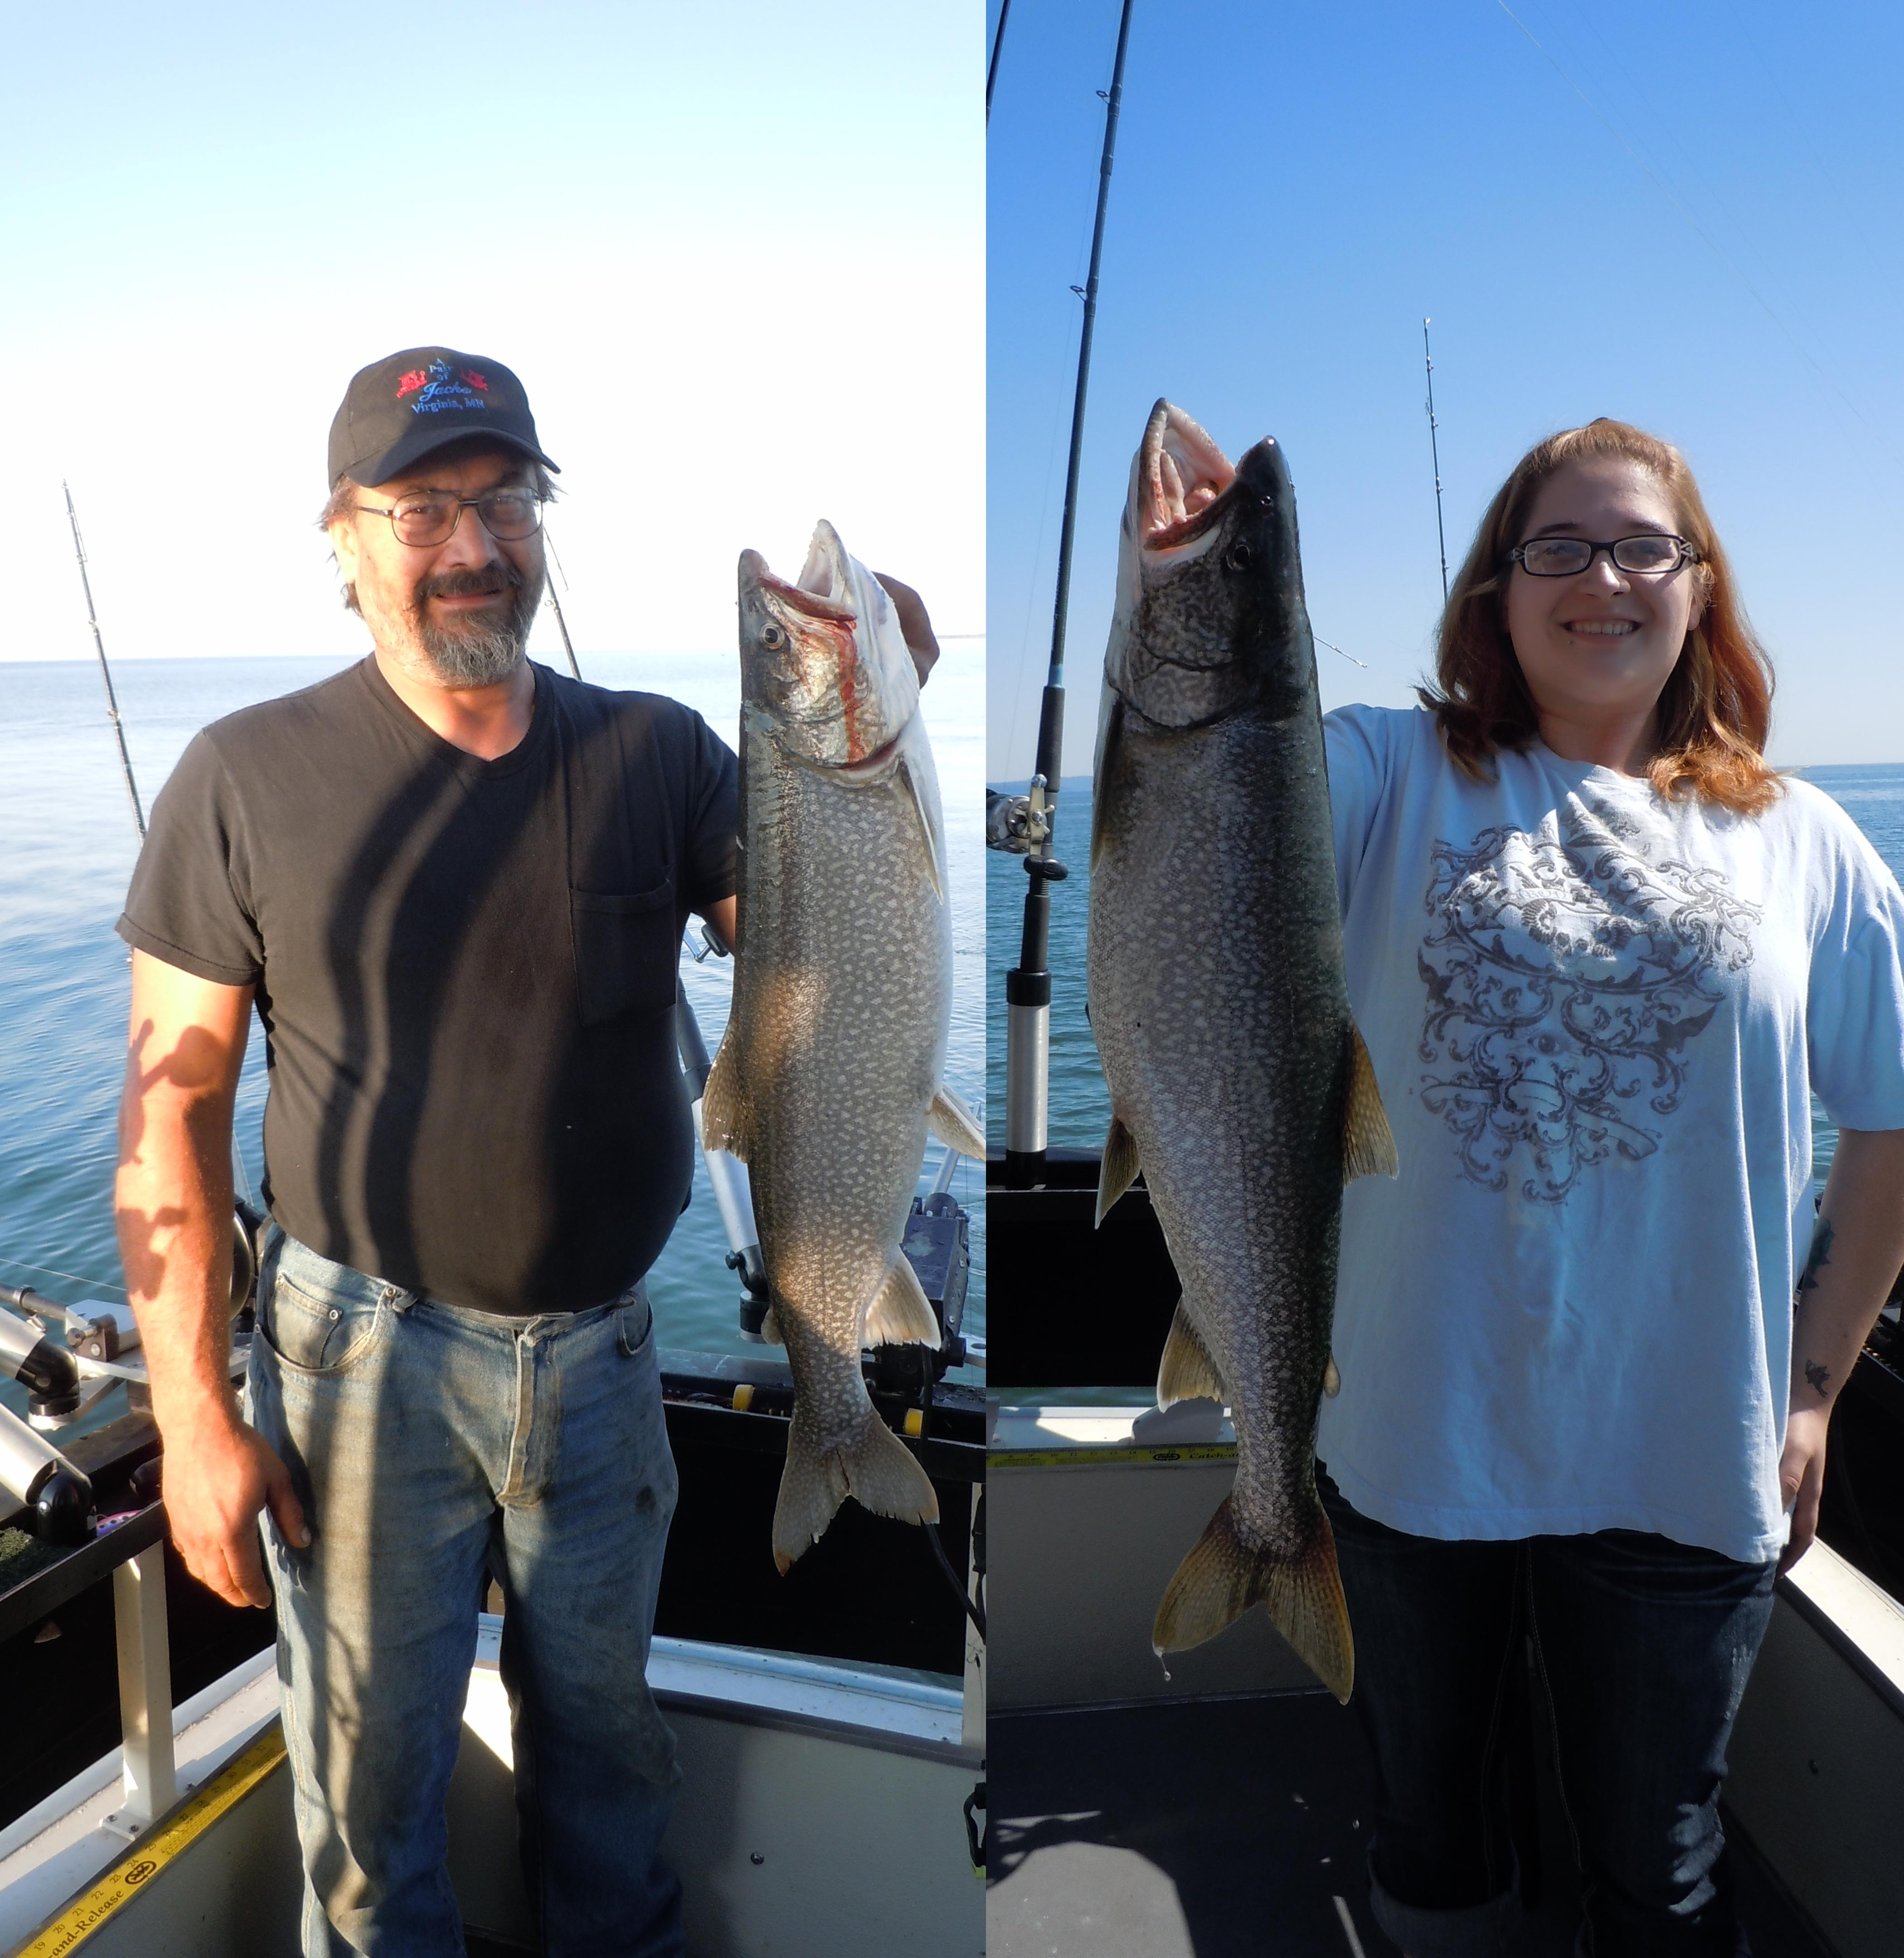 Flooding in duluth and muddy waters on lake superior promp for Duluth mn fishing report